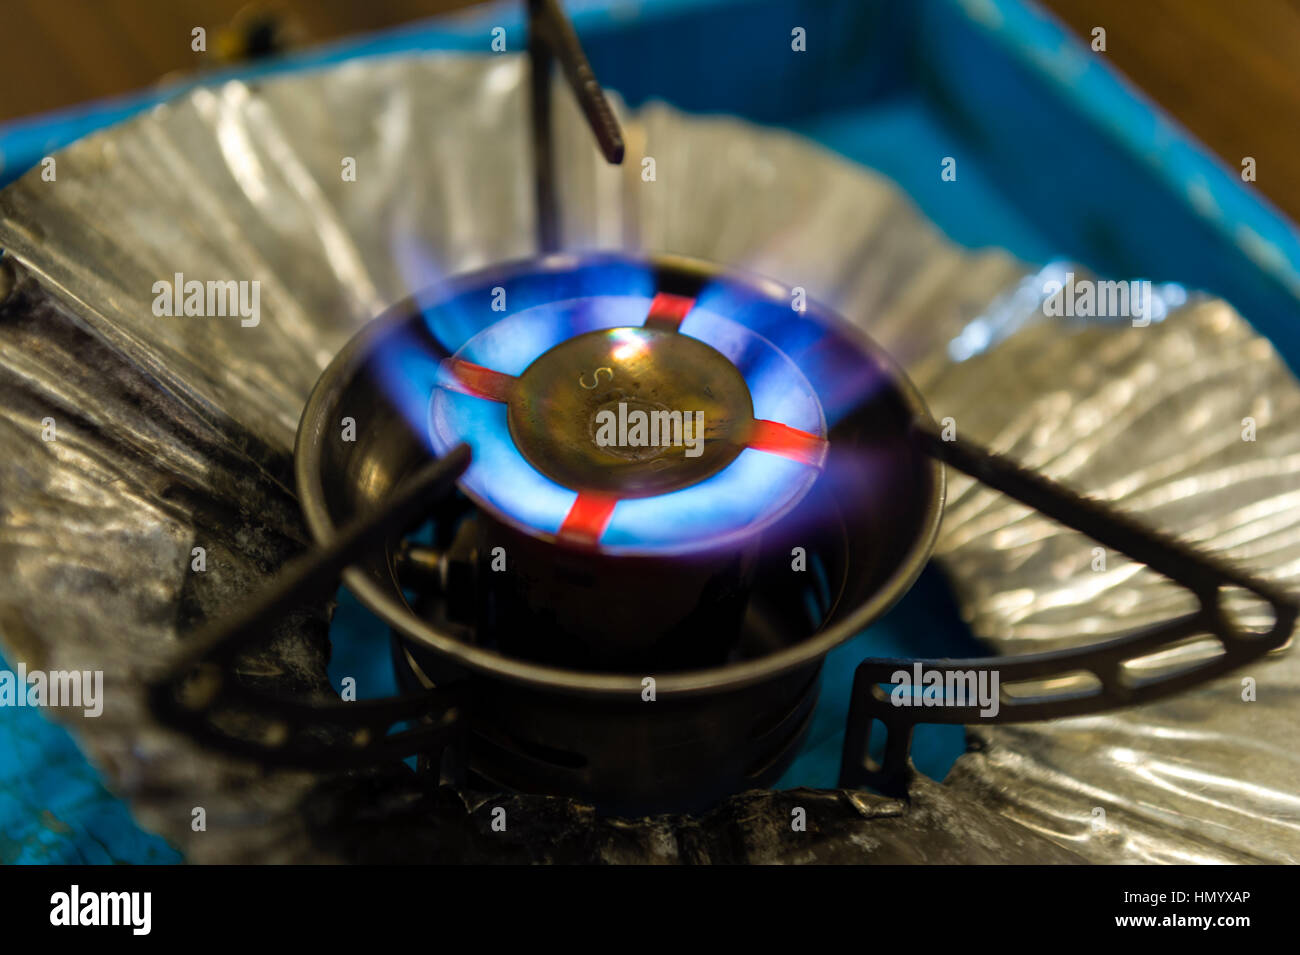 A blue gas flame emerging from jets in an Antarctic camping cooker. - Stock Image